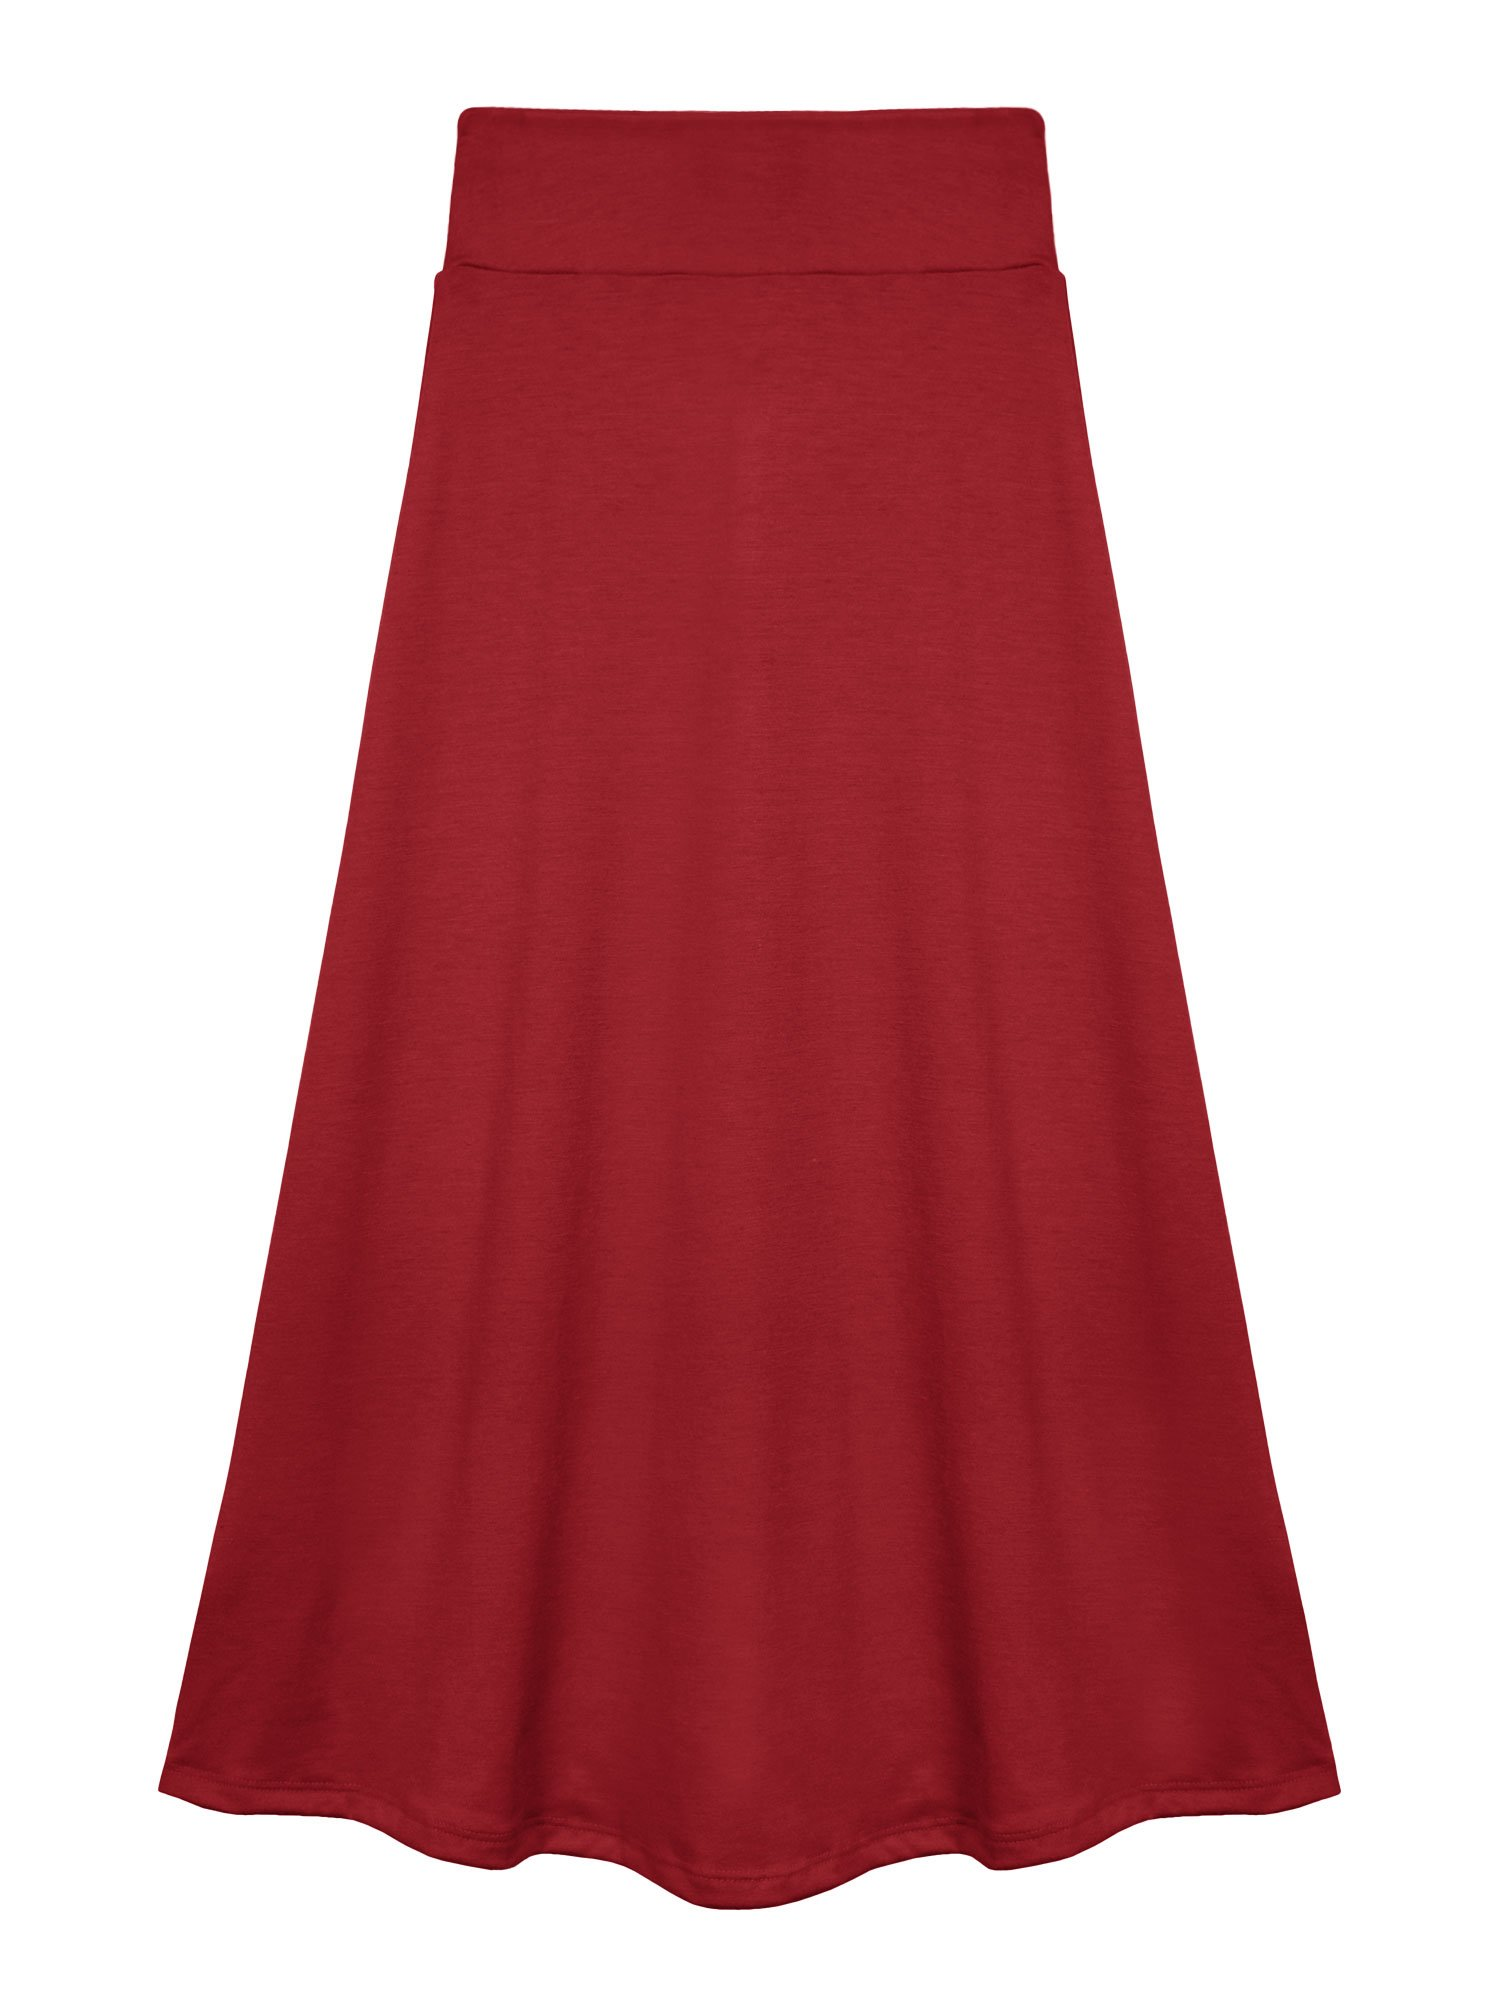 Bello Giovane Girls 7-16 Years Solid Maxi Skirt (Small, Red)